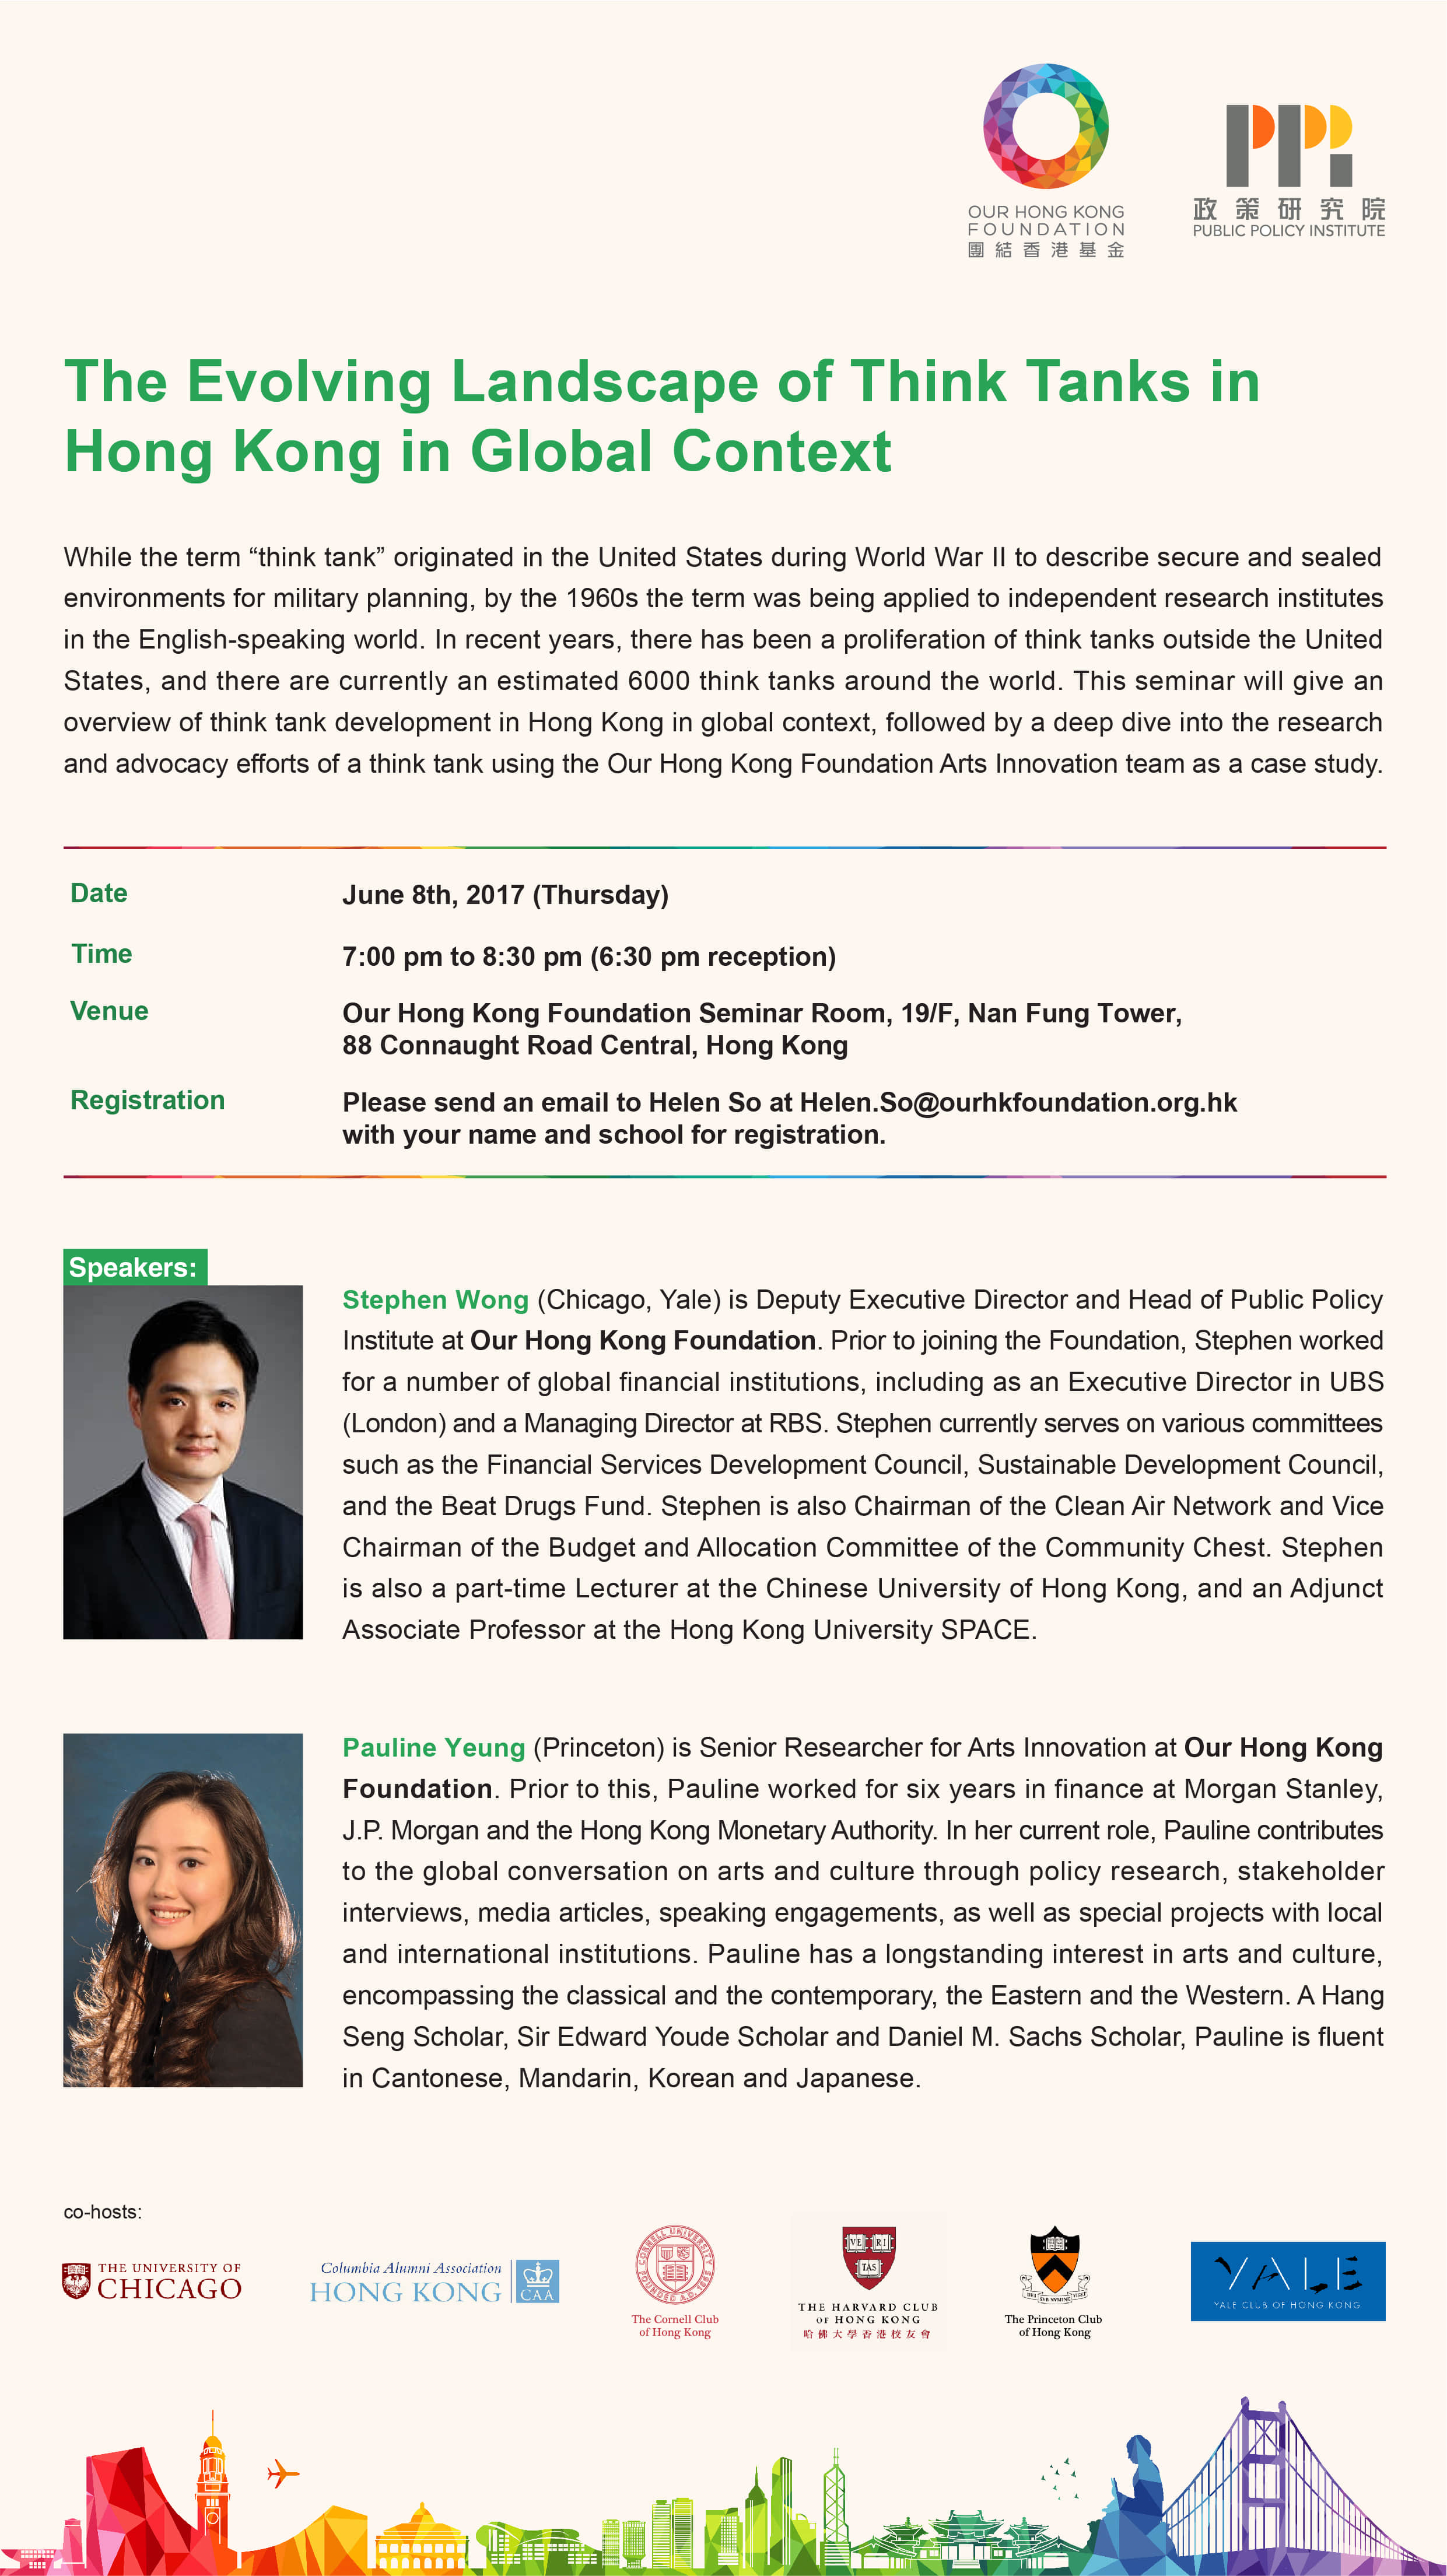 The Evolving Landscape of Think Tanks in Hong Kong in Global